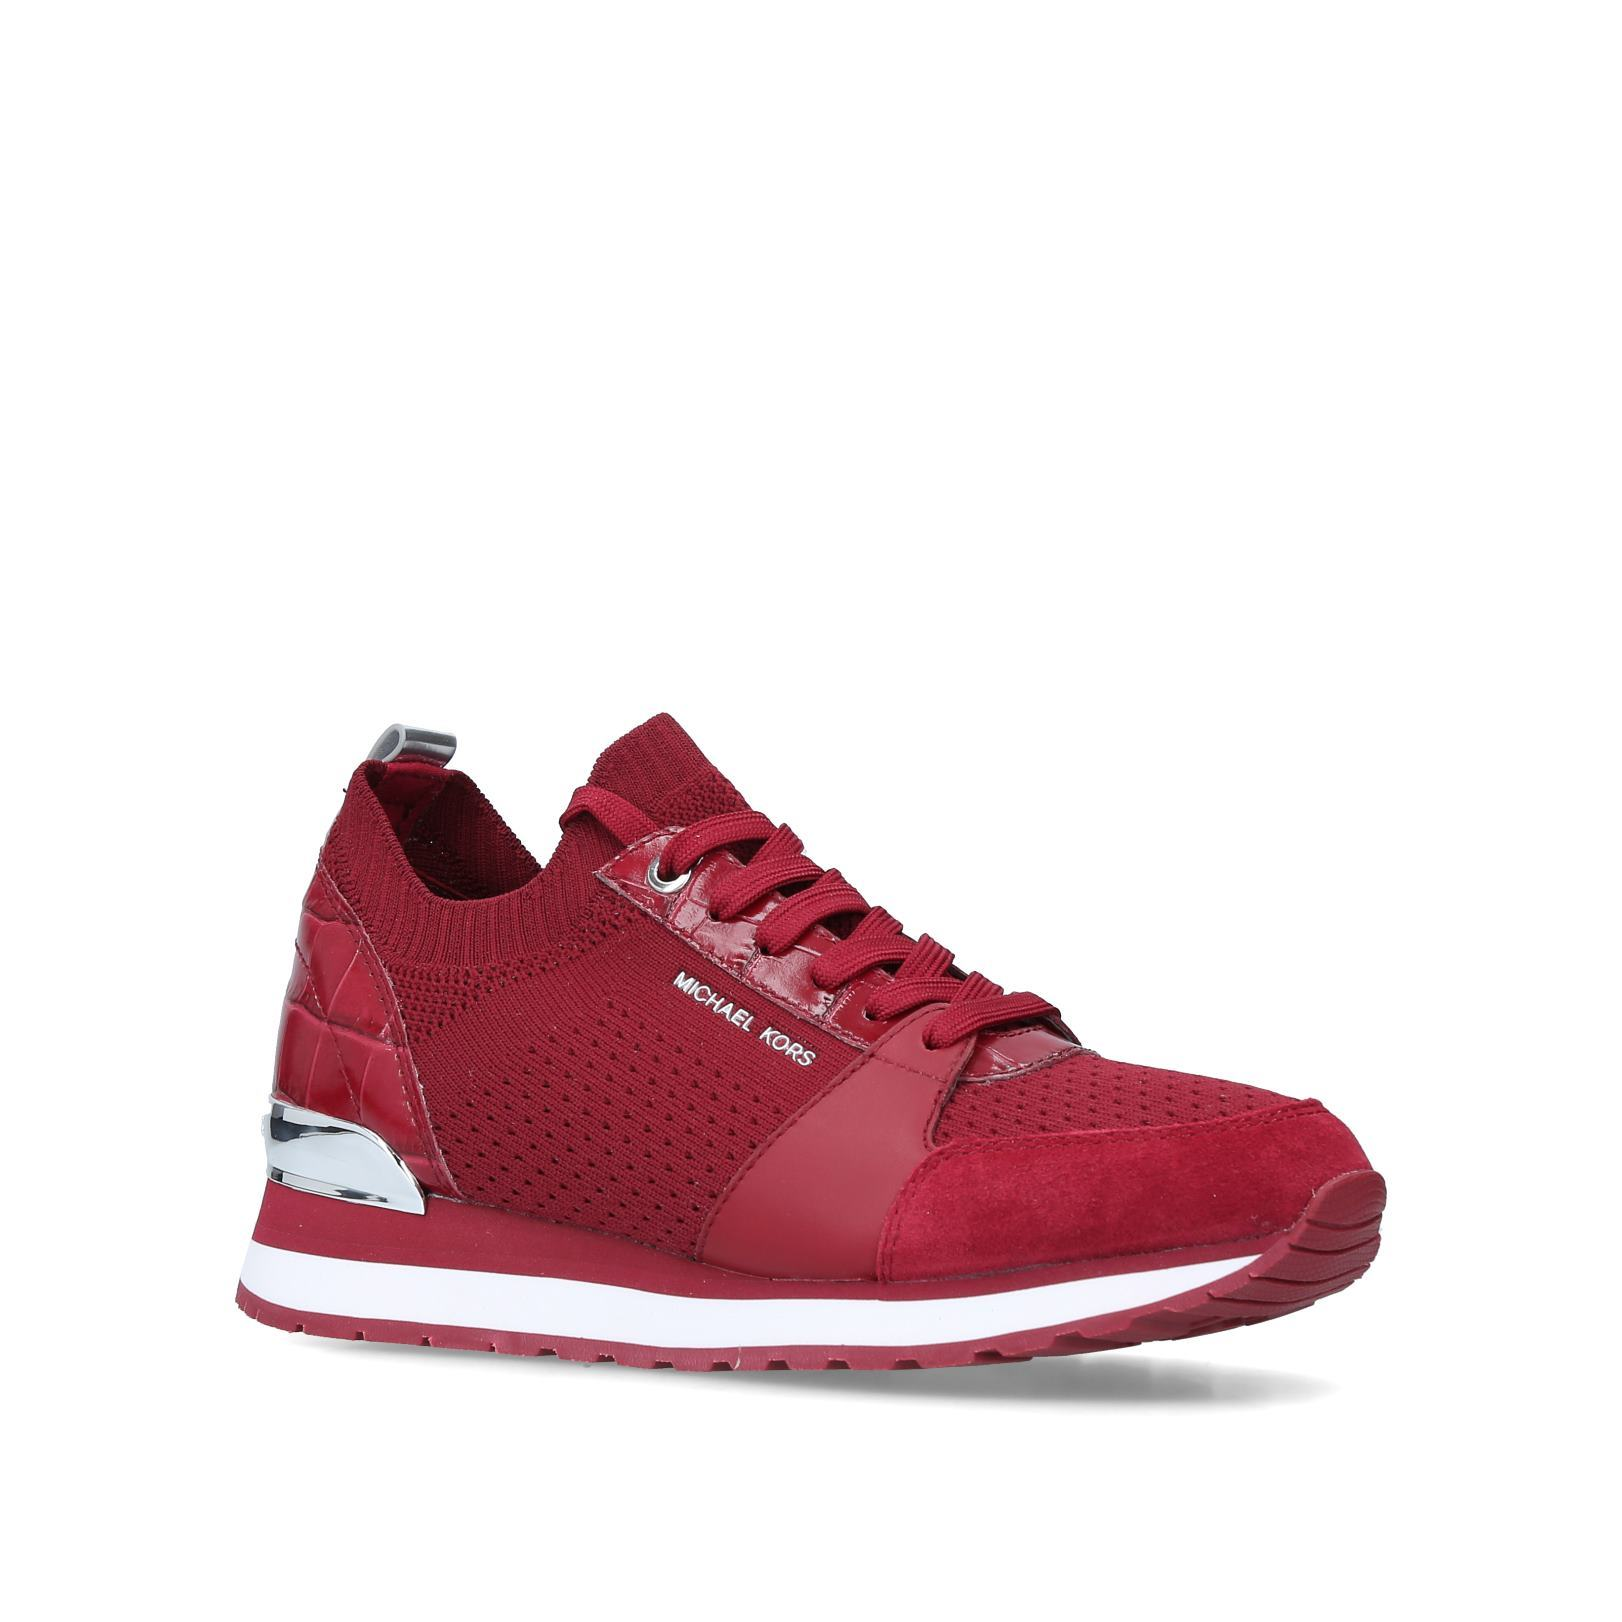 264e72ddfdc1 BILLIE KNIT TRAINER Billie Knit Trainer No Heel Sneakers Michael Michael  Kors Wine by MICHAEL MICHAEL KORS